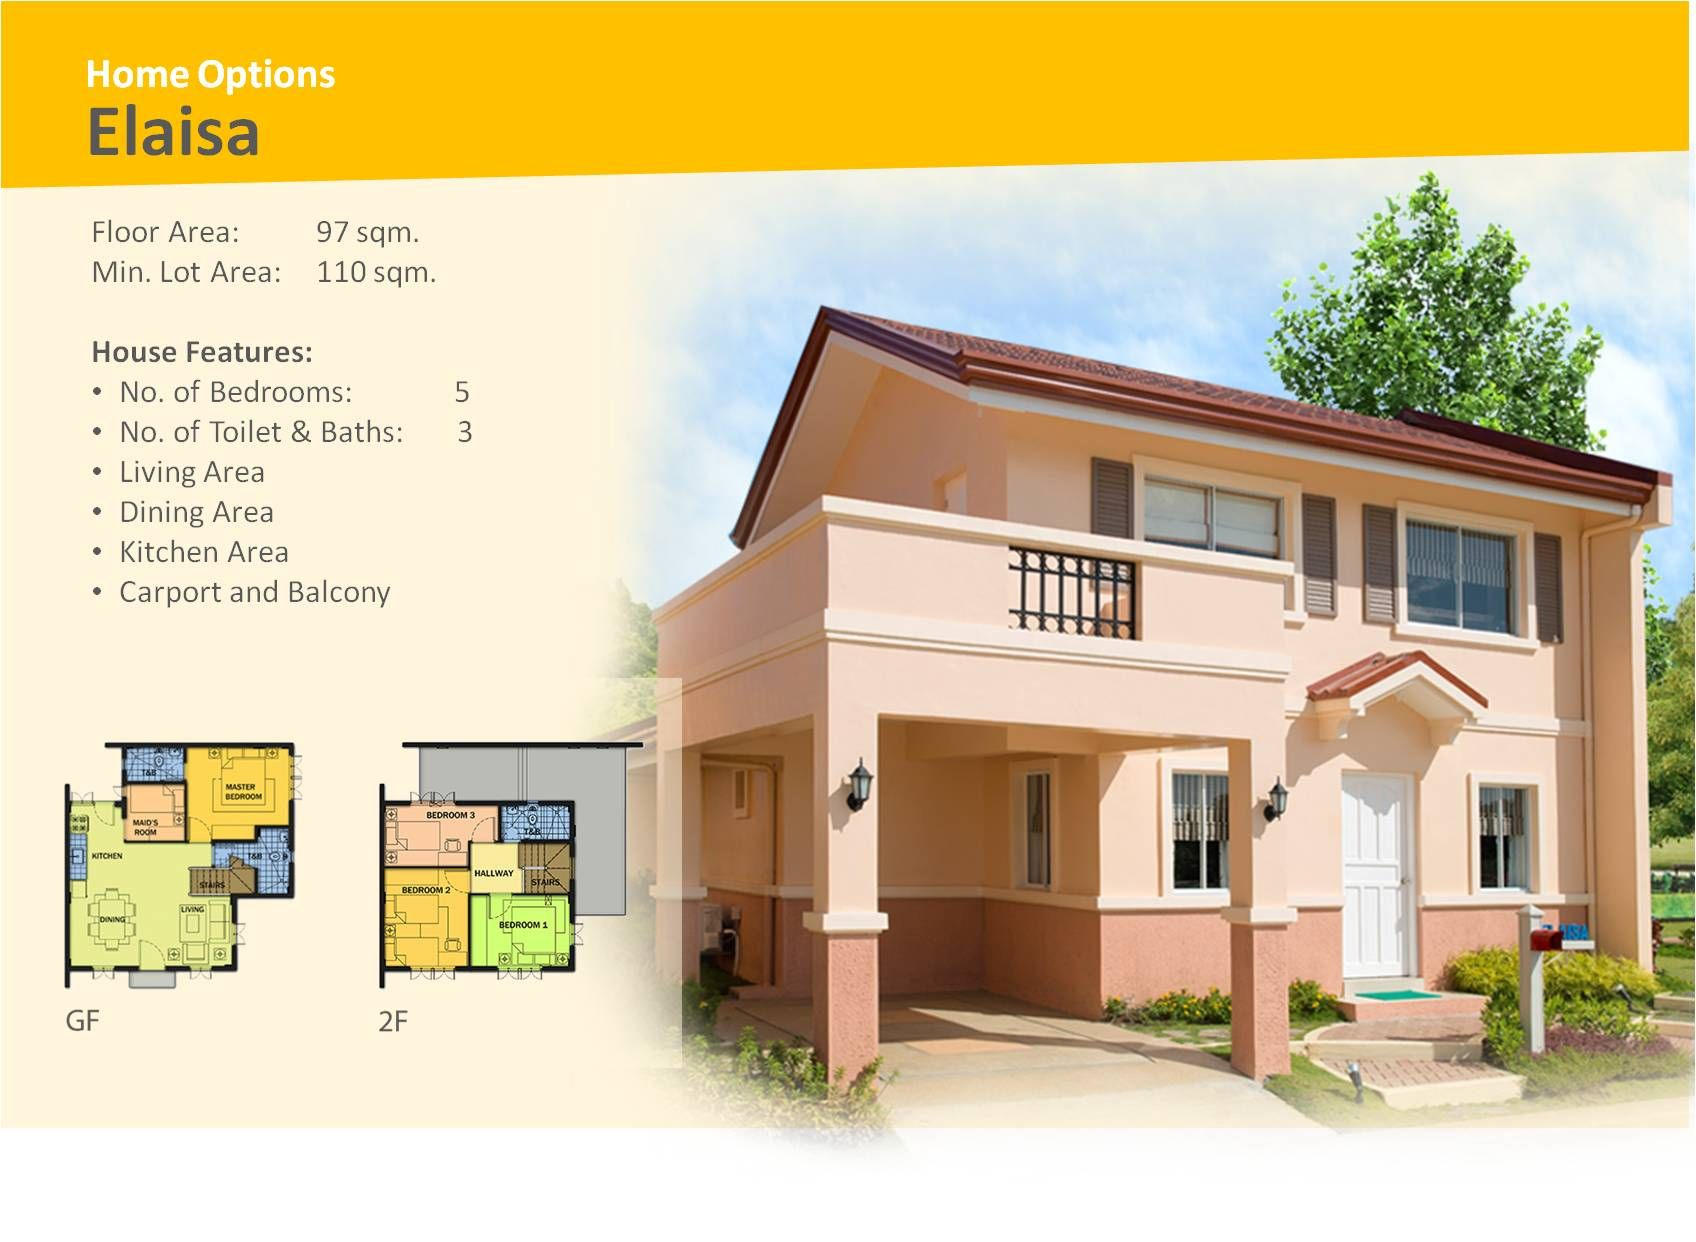 Wooden crib for sale cavite - House And Lot For Sale Silang Cavite Camella Alta Mark 09201000742 Rebl 21221 Hlurb Reg